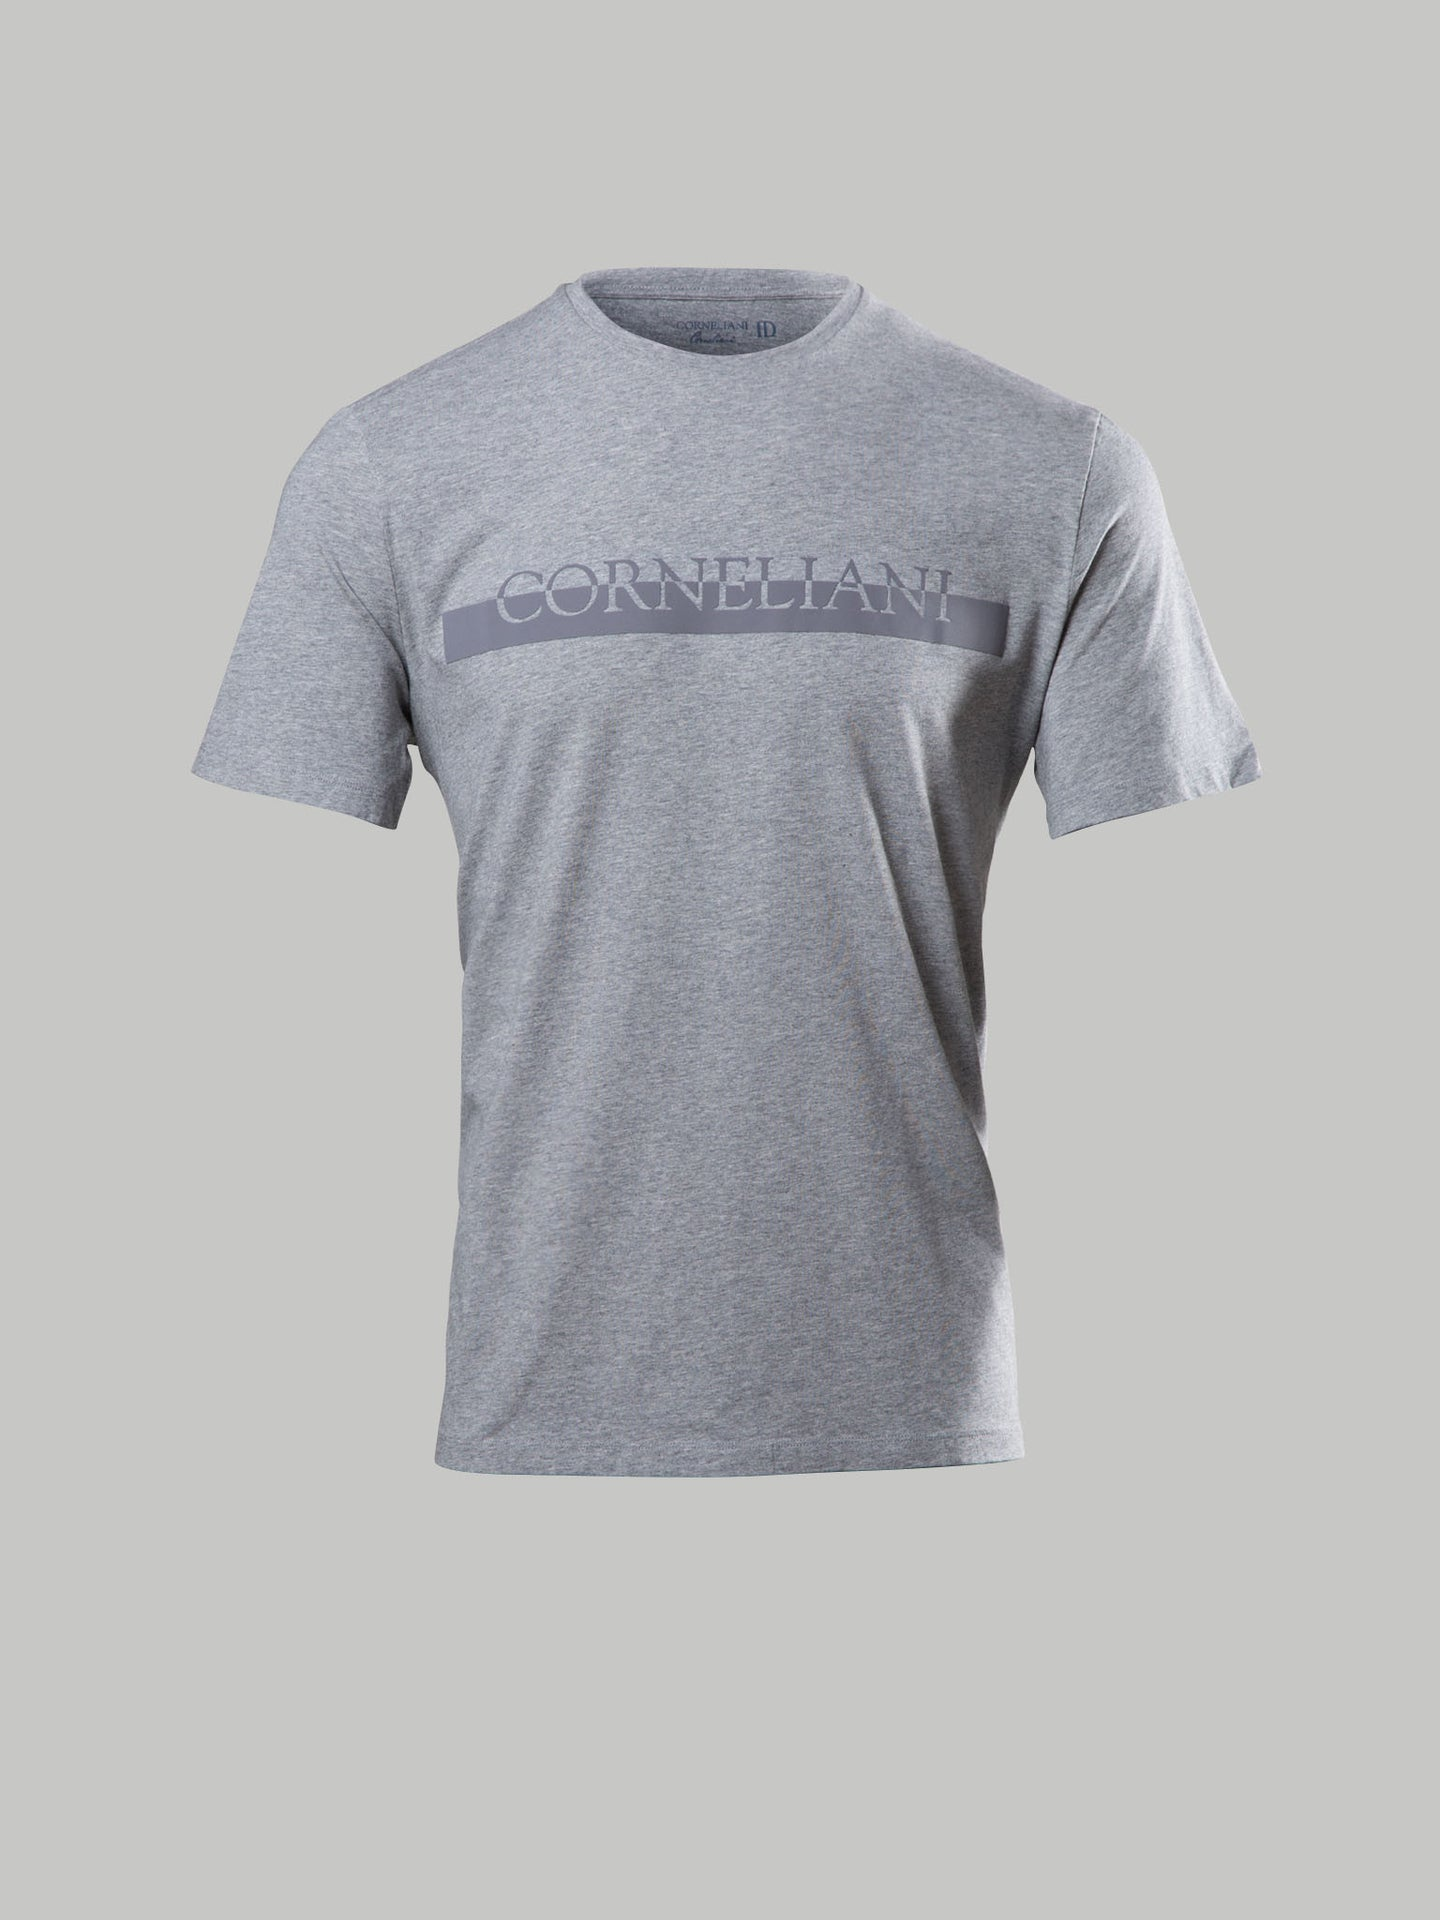 Corneliani Branded T-Shirt (Grey)